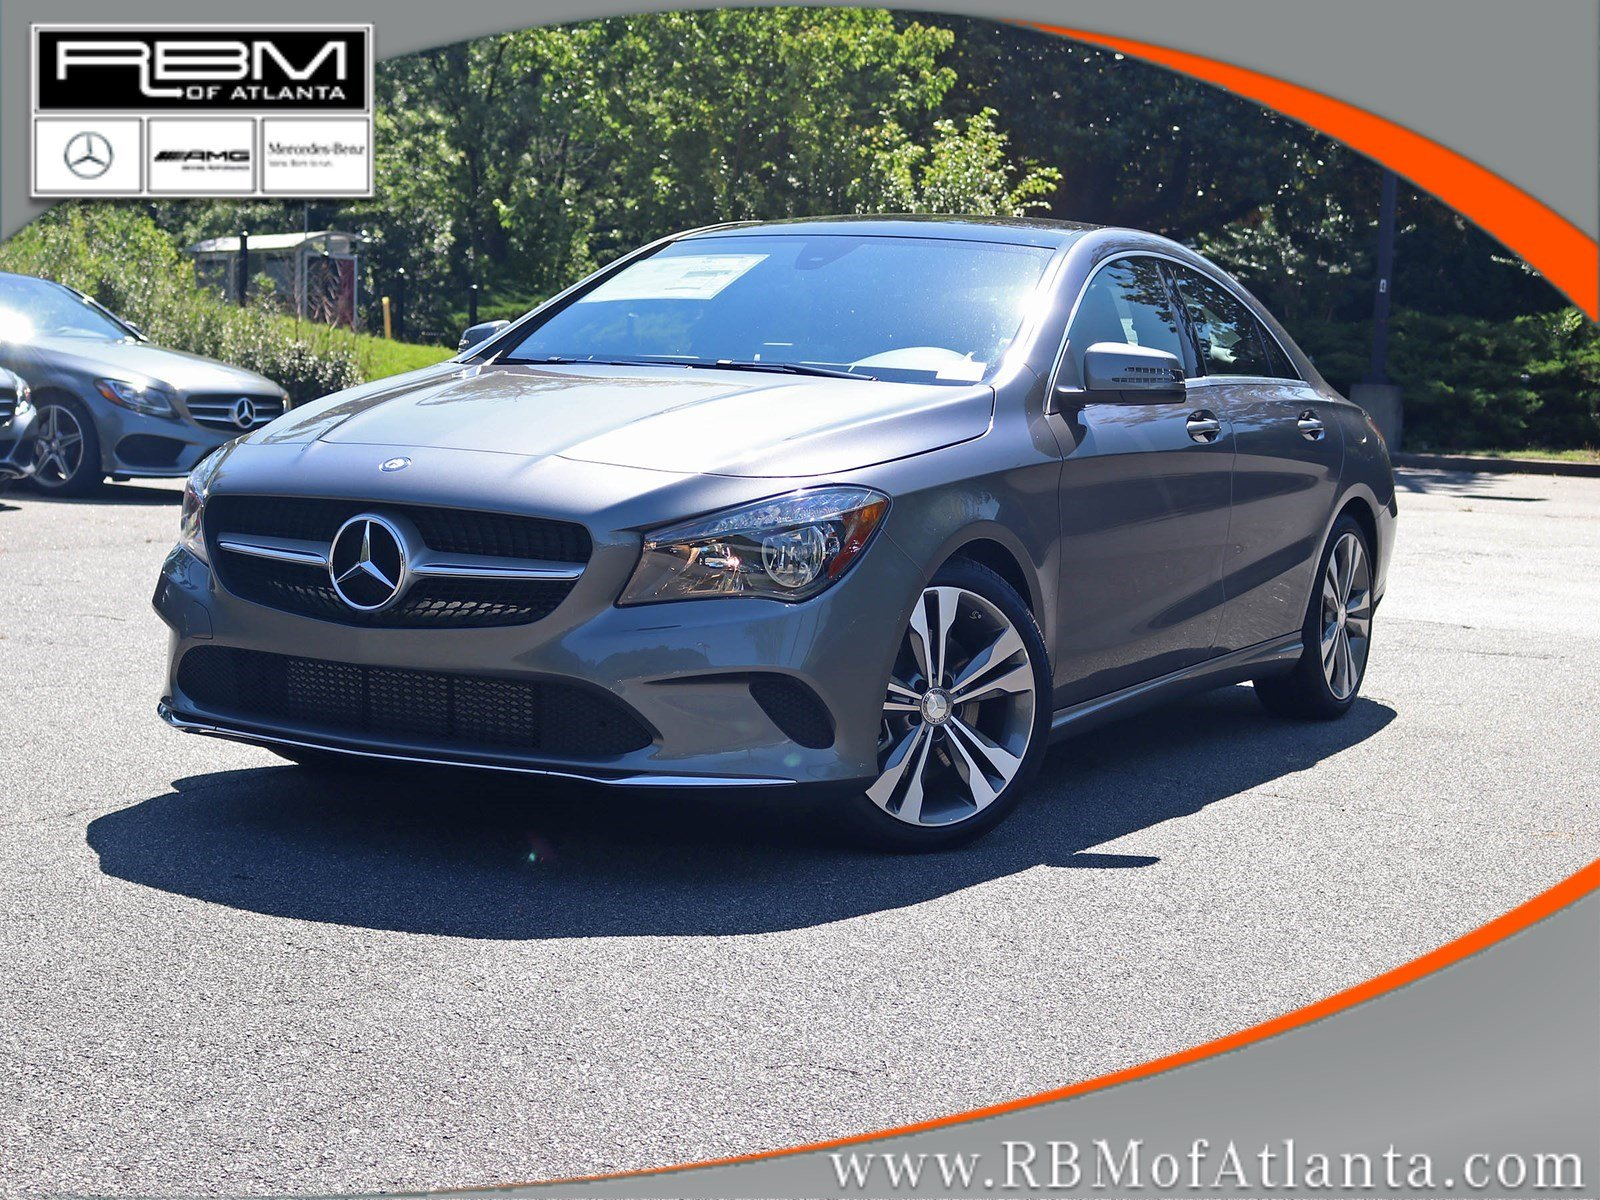 new 2018 mercedes benz cla cla 250 coupe in atlanta m32289 rbm of atlanta. Black Bedroom Furniture Sets. Home Design Ideas